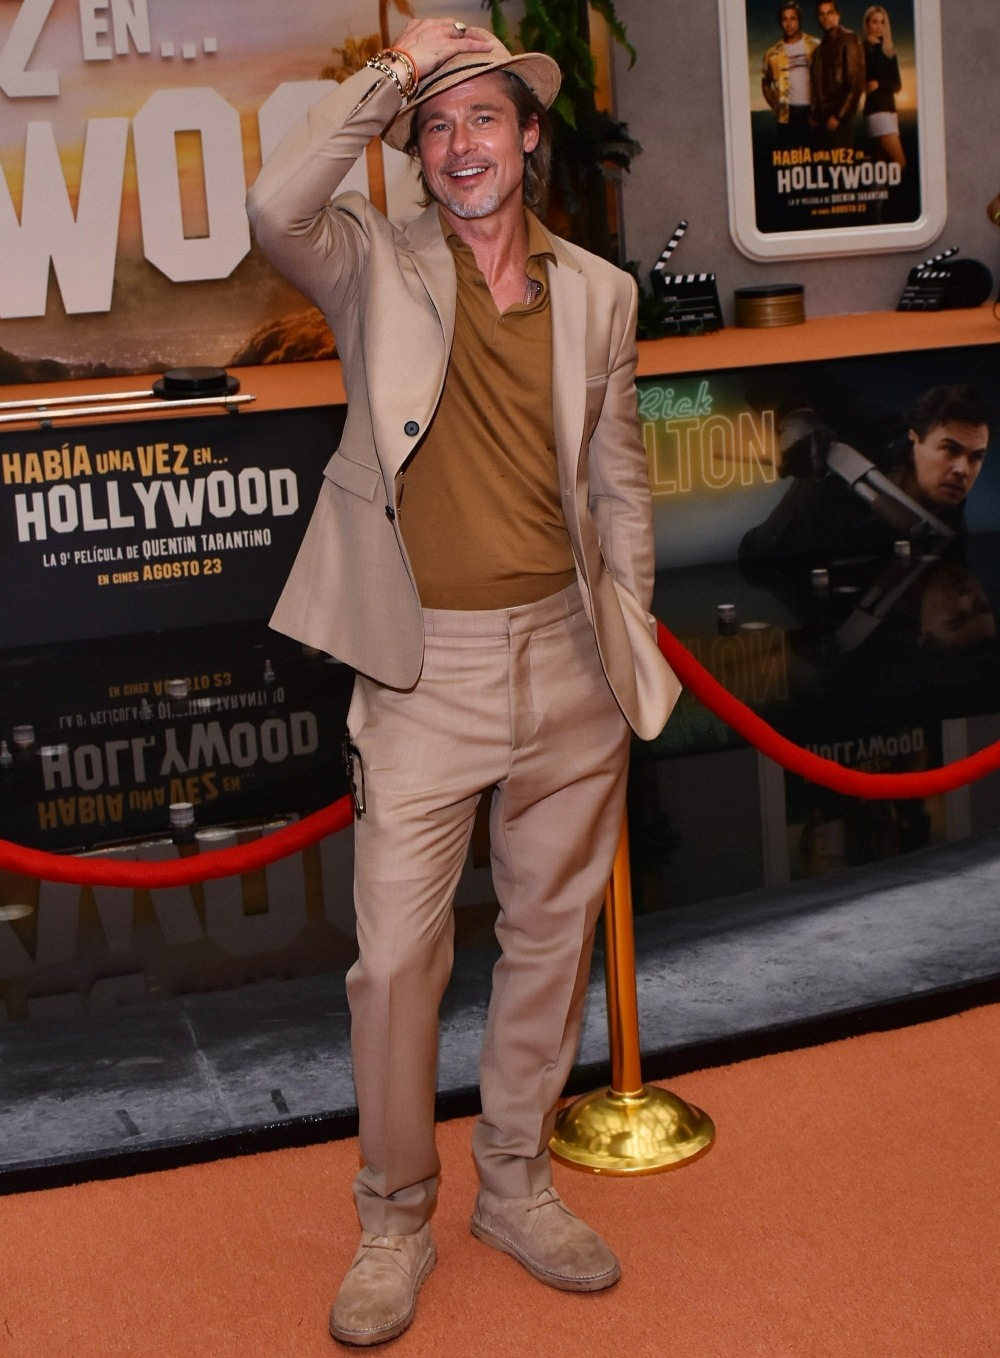 Brad Pitt seen during the premiere of 'Once Upon a Time in... Hollywood' in Mexico